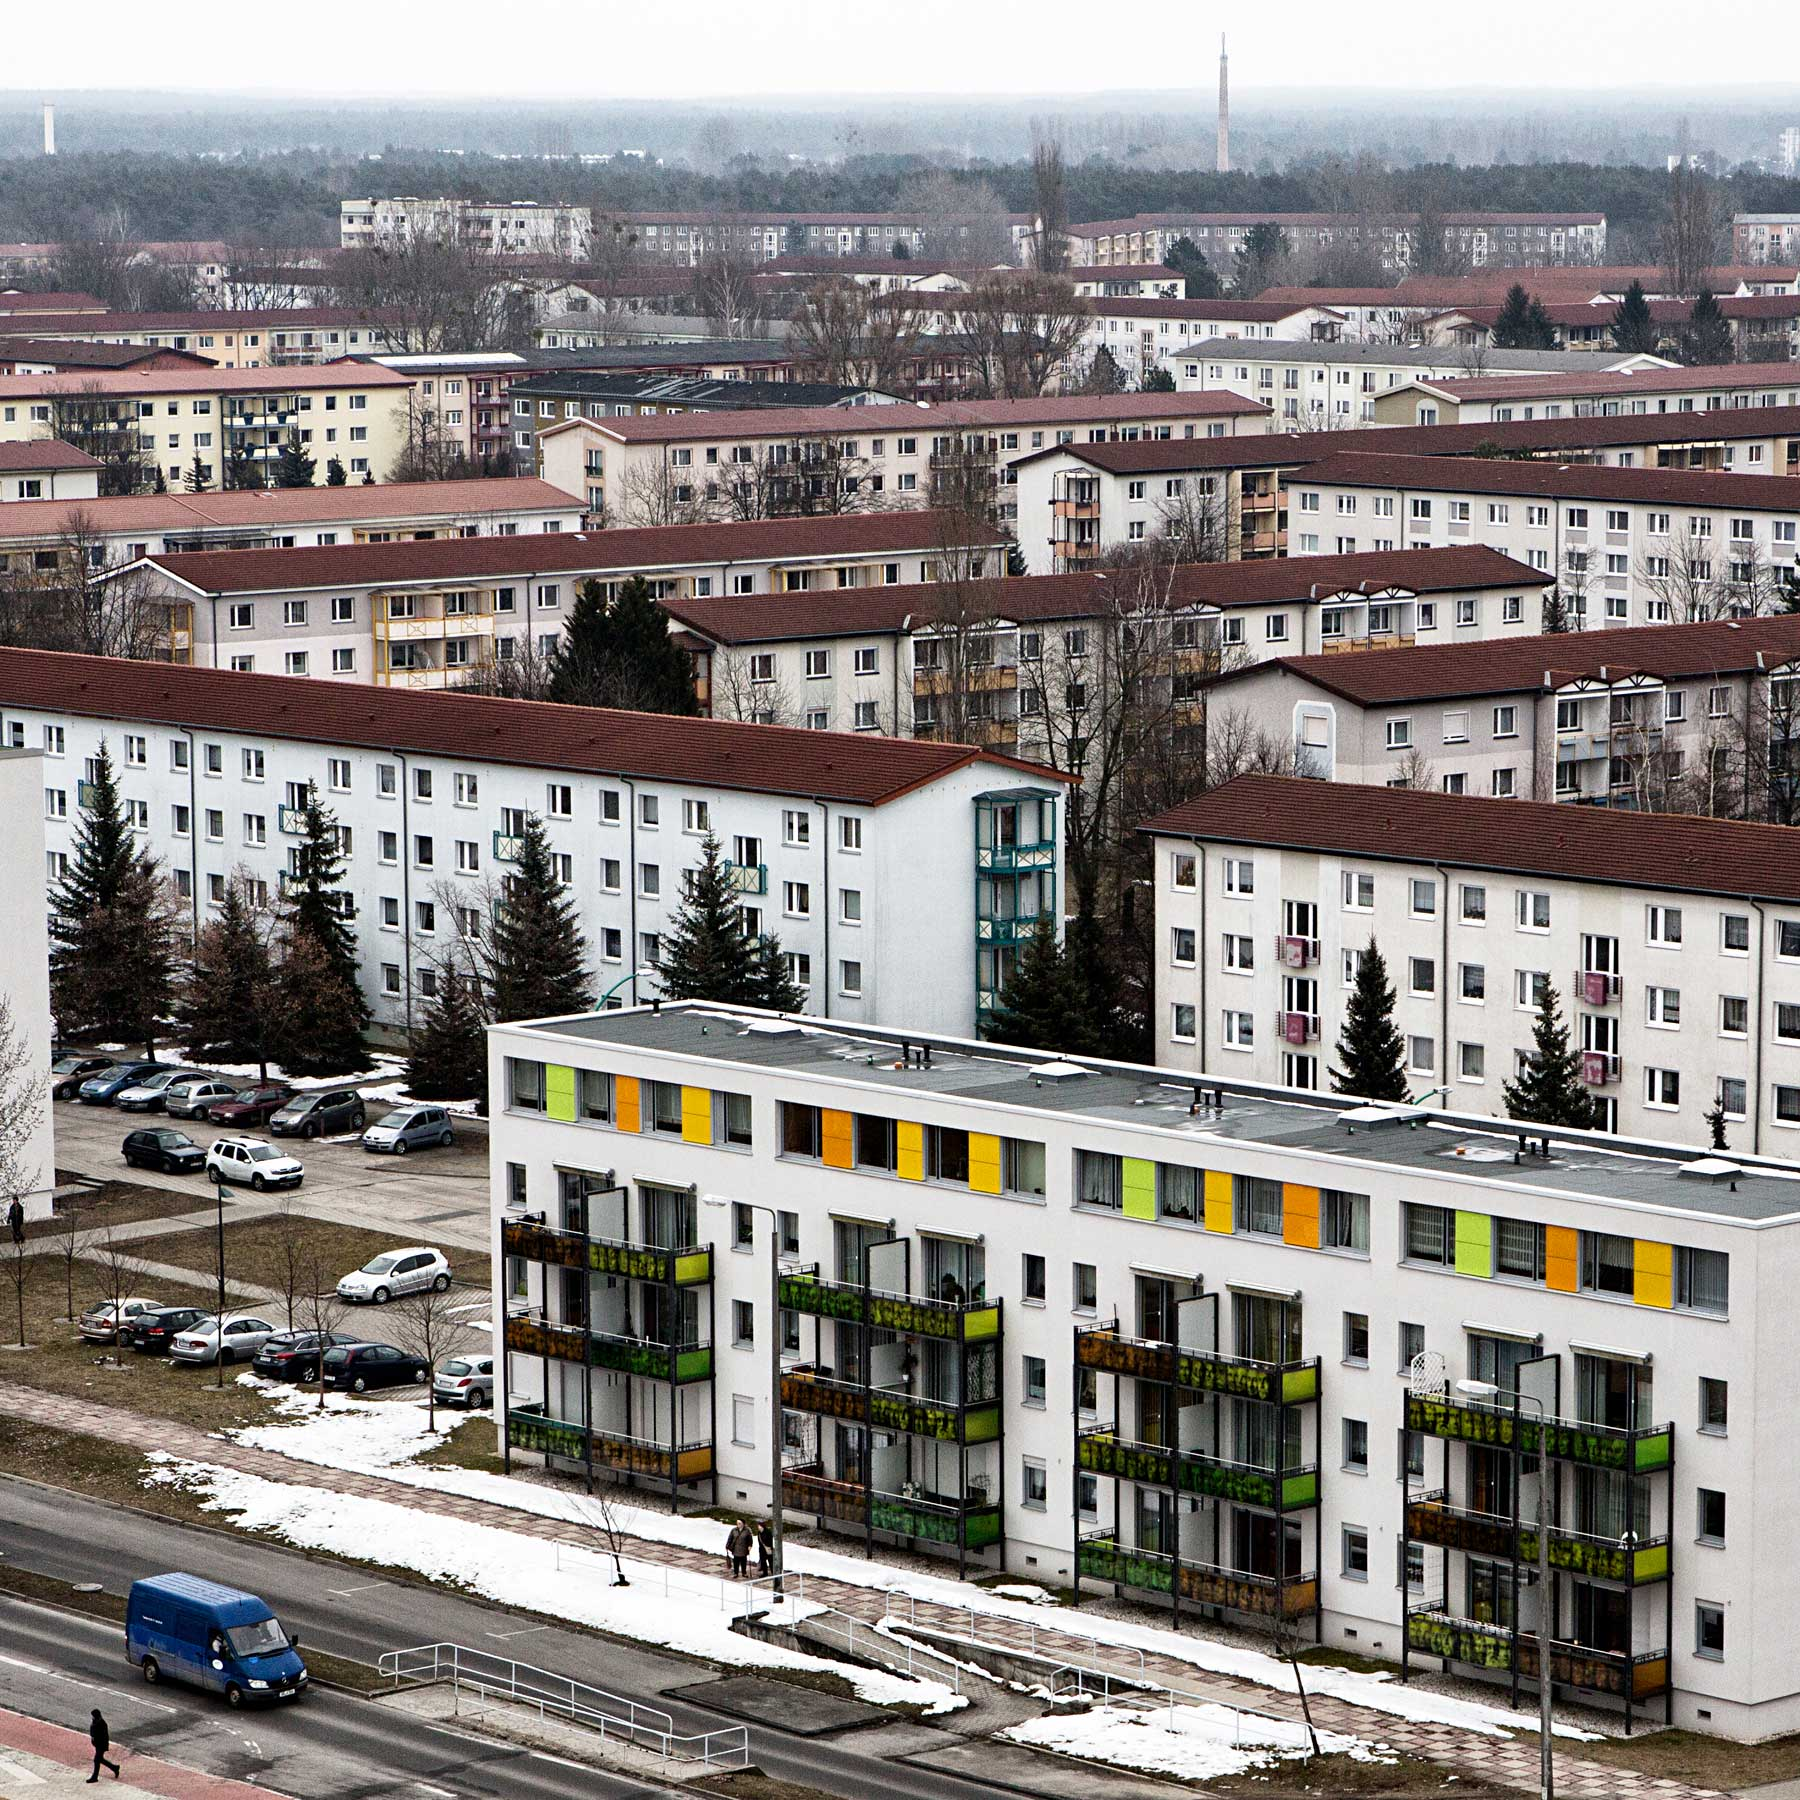 Apartment complexes built to keep up with the fast growing population of Hoyerswerda during the GDR. These buildings have been renovated by adding color and railings to make them more attractive to future residence.